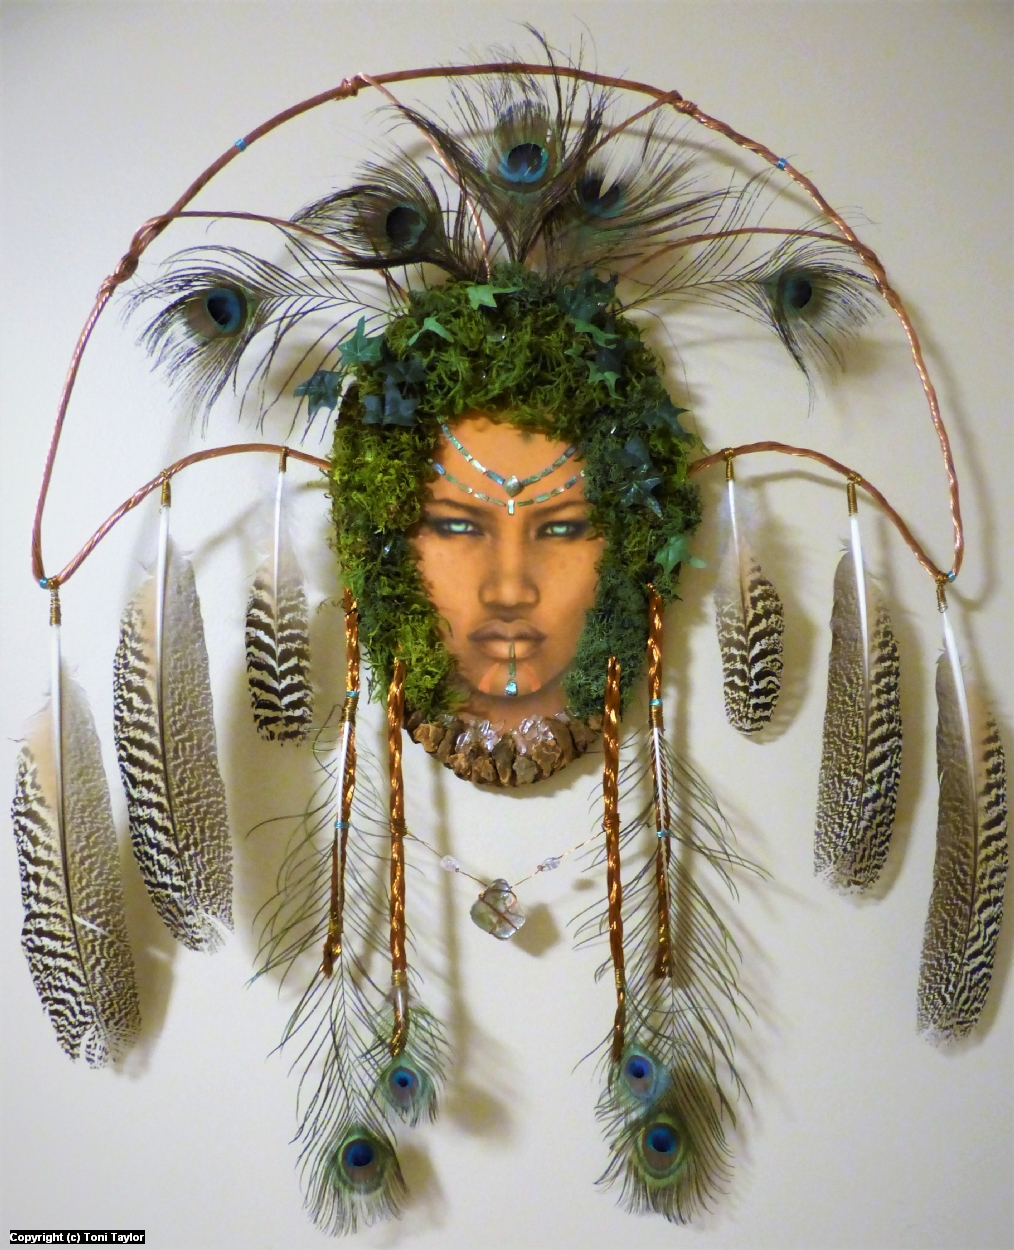 Dryad Queen Artwork by Toni Taylor